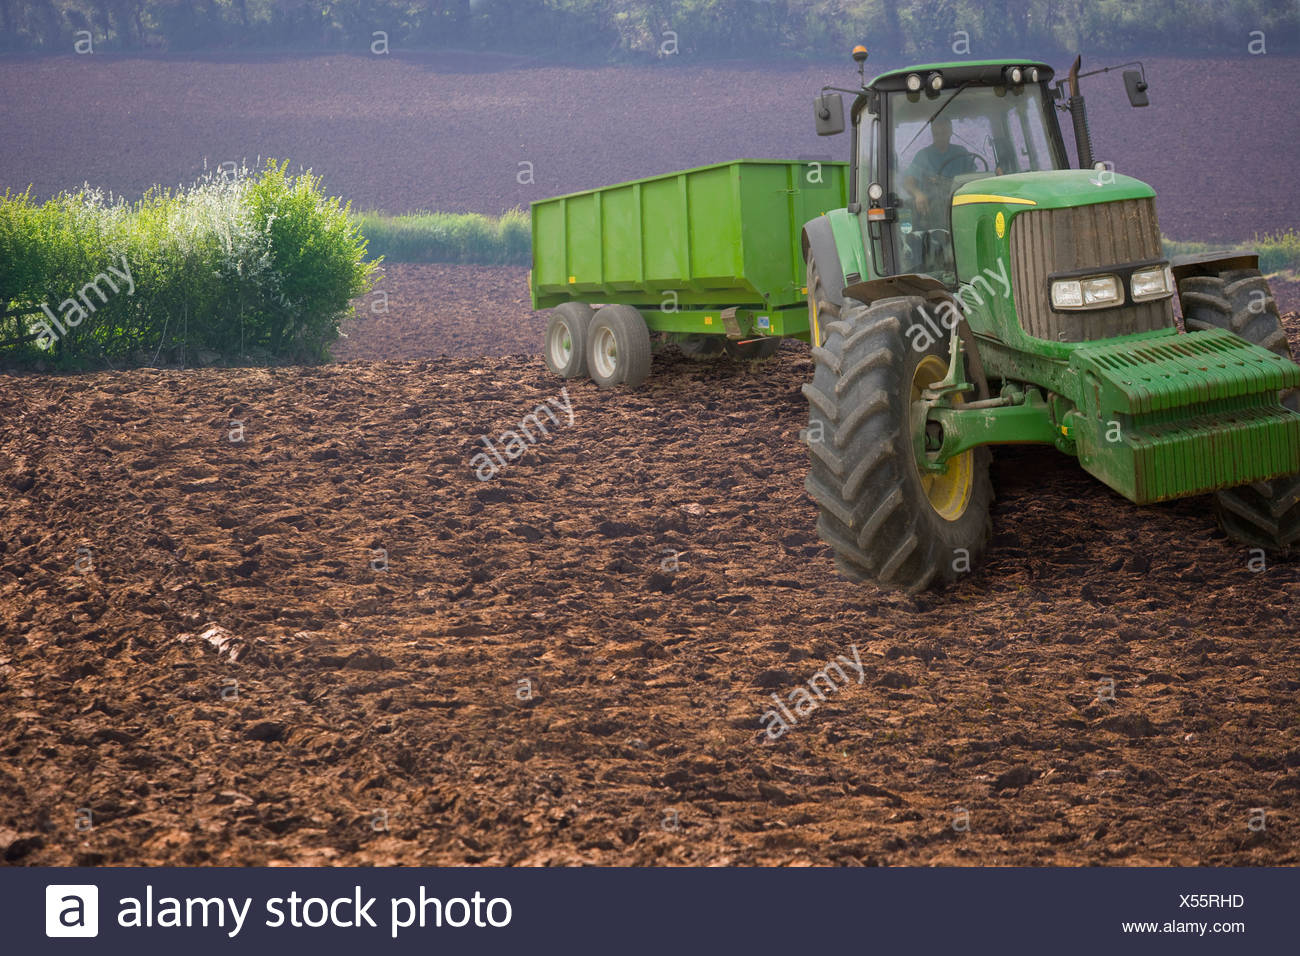 Tractor and trailer in ploughed field - Stock Image